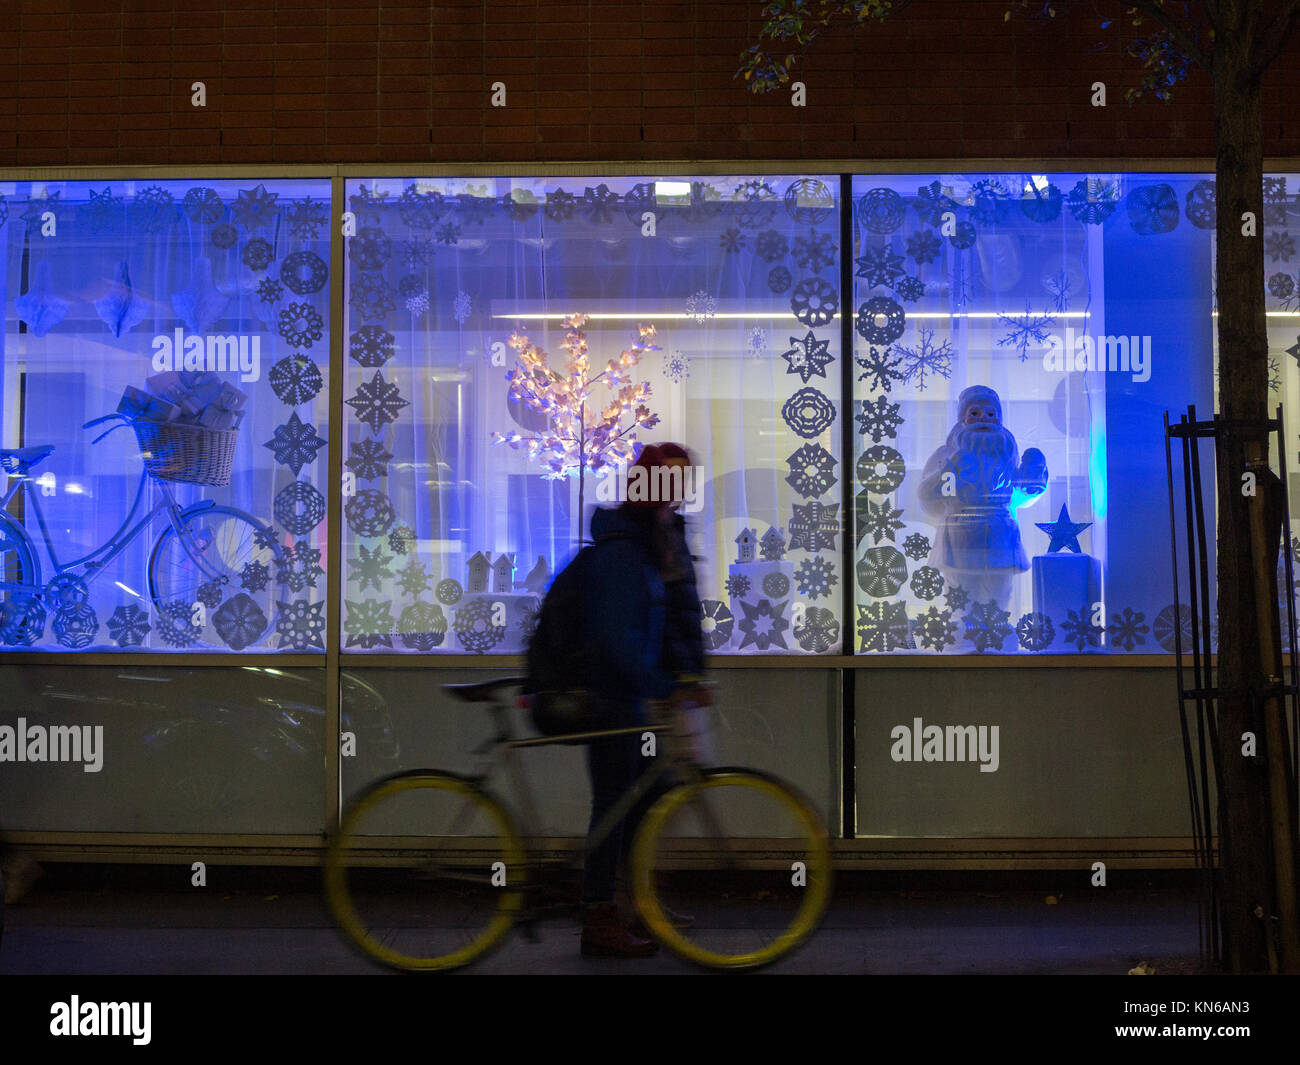 A silhouette of someone looking in to the window of a Christmas display - Stock Image